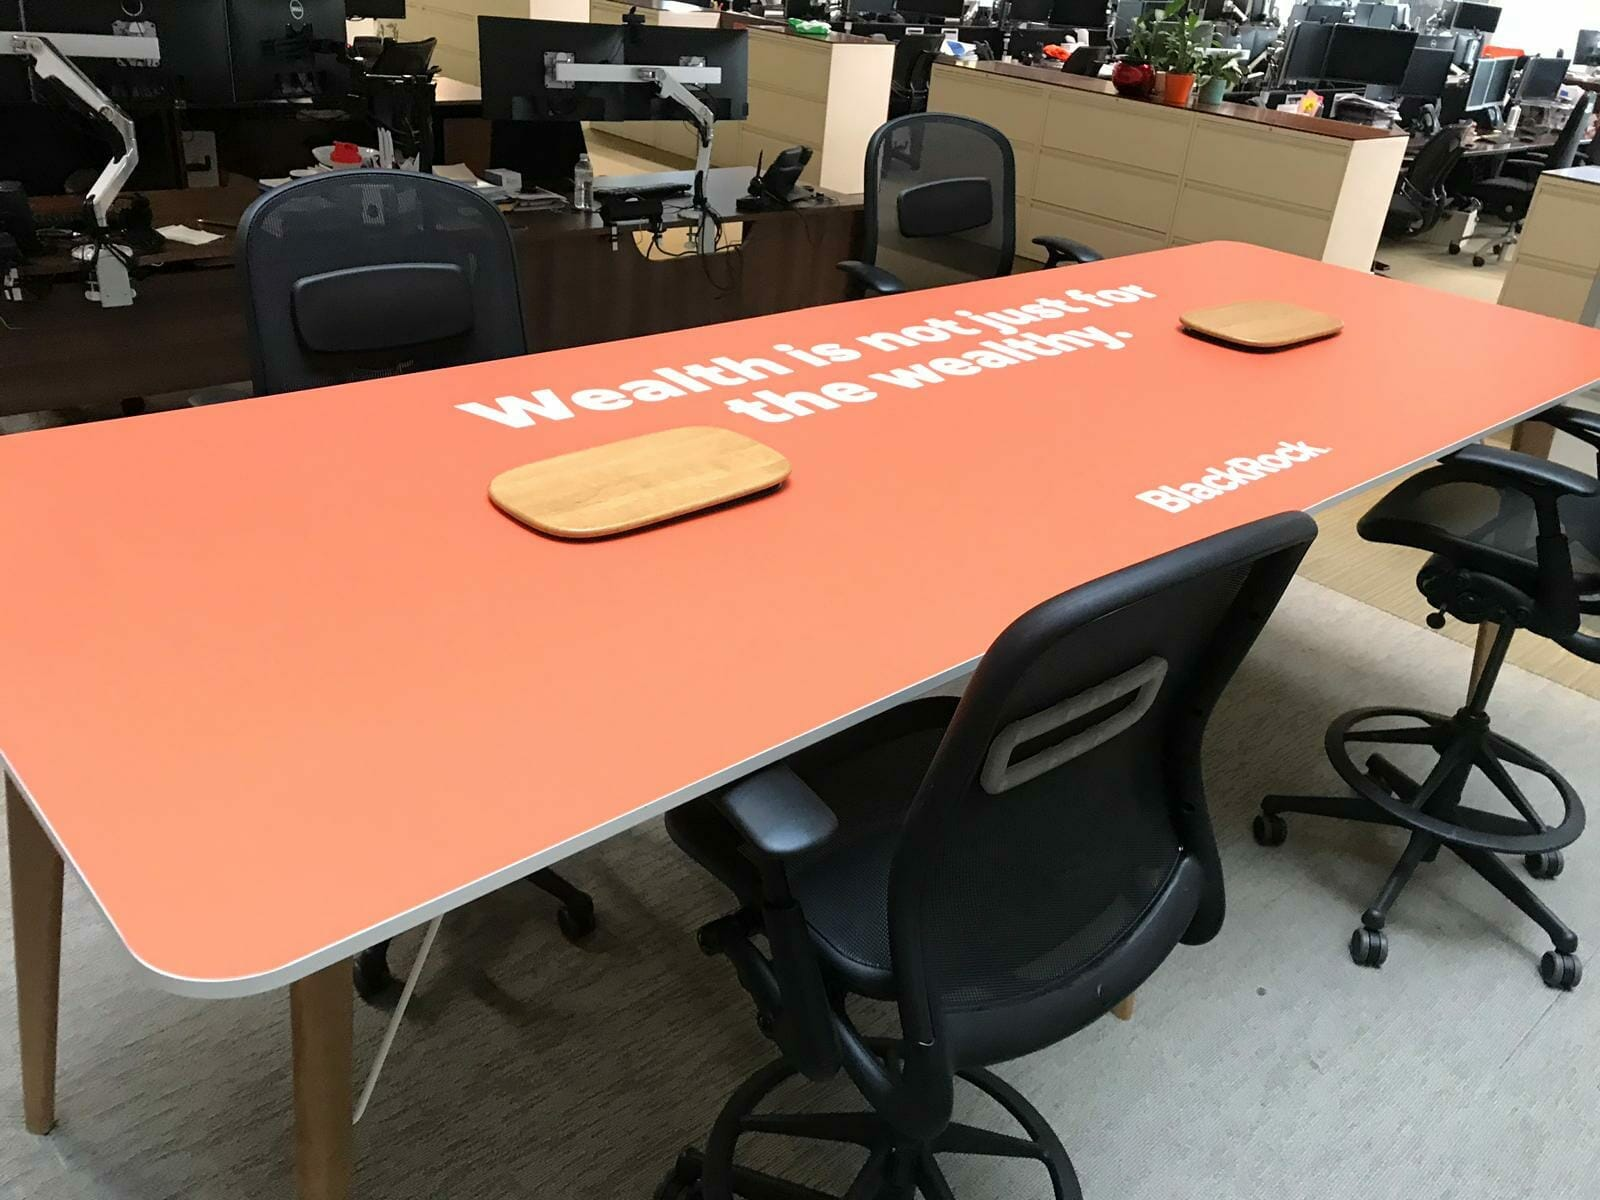 Office graphics on a table